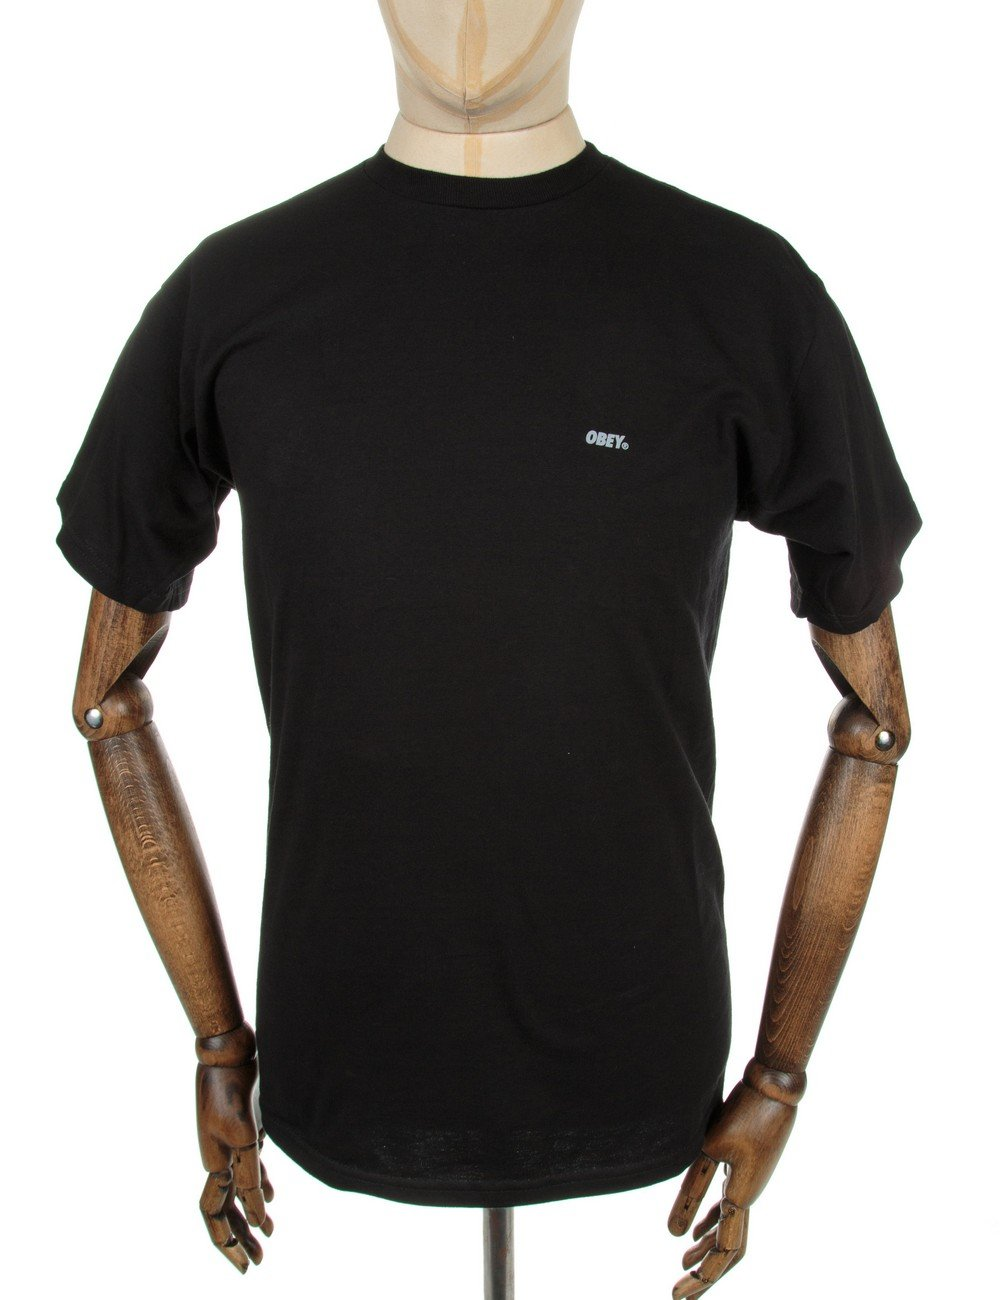 Obey clothing font reflective t shirt black obey for Black obey t shirt